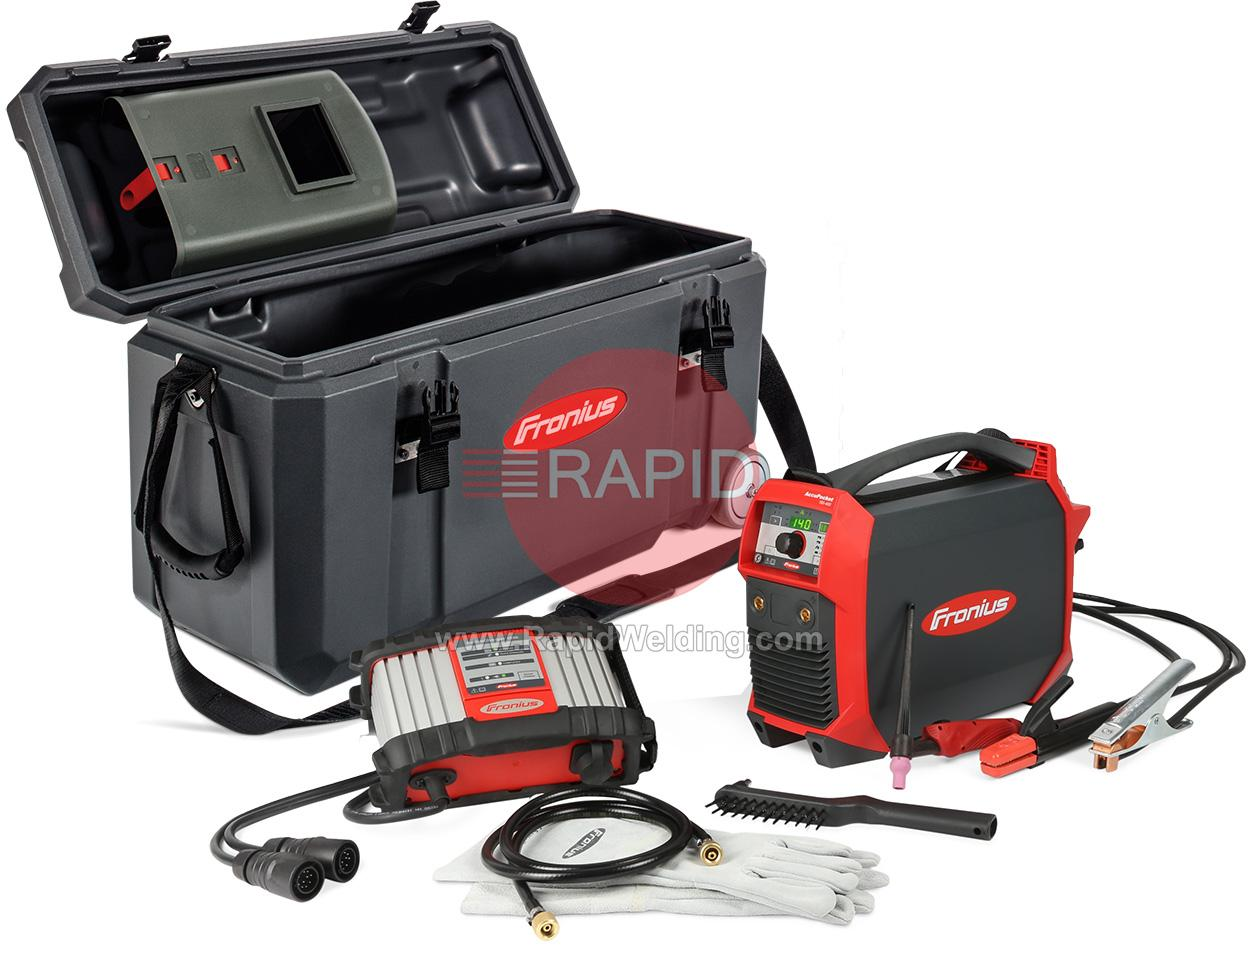 4075201850  Fronius AccuPocket 150 Battery Powered Tig Package with Charger, Tig Torch, Earth Cable and Case